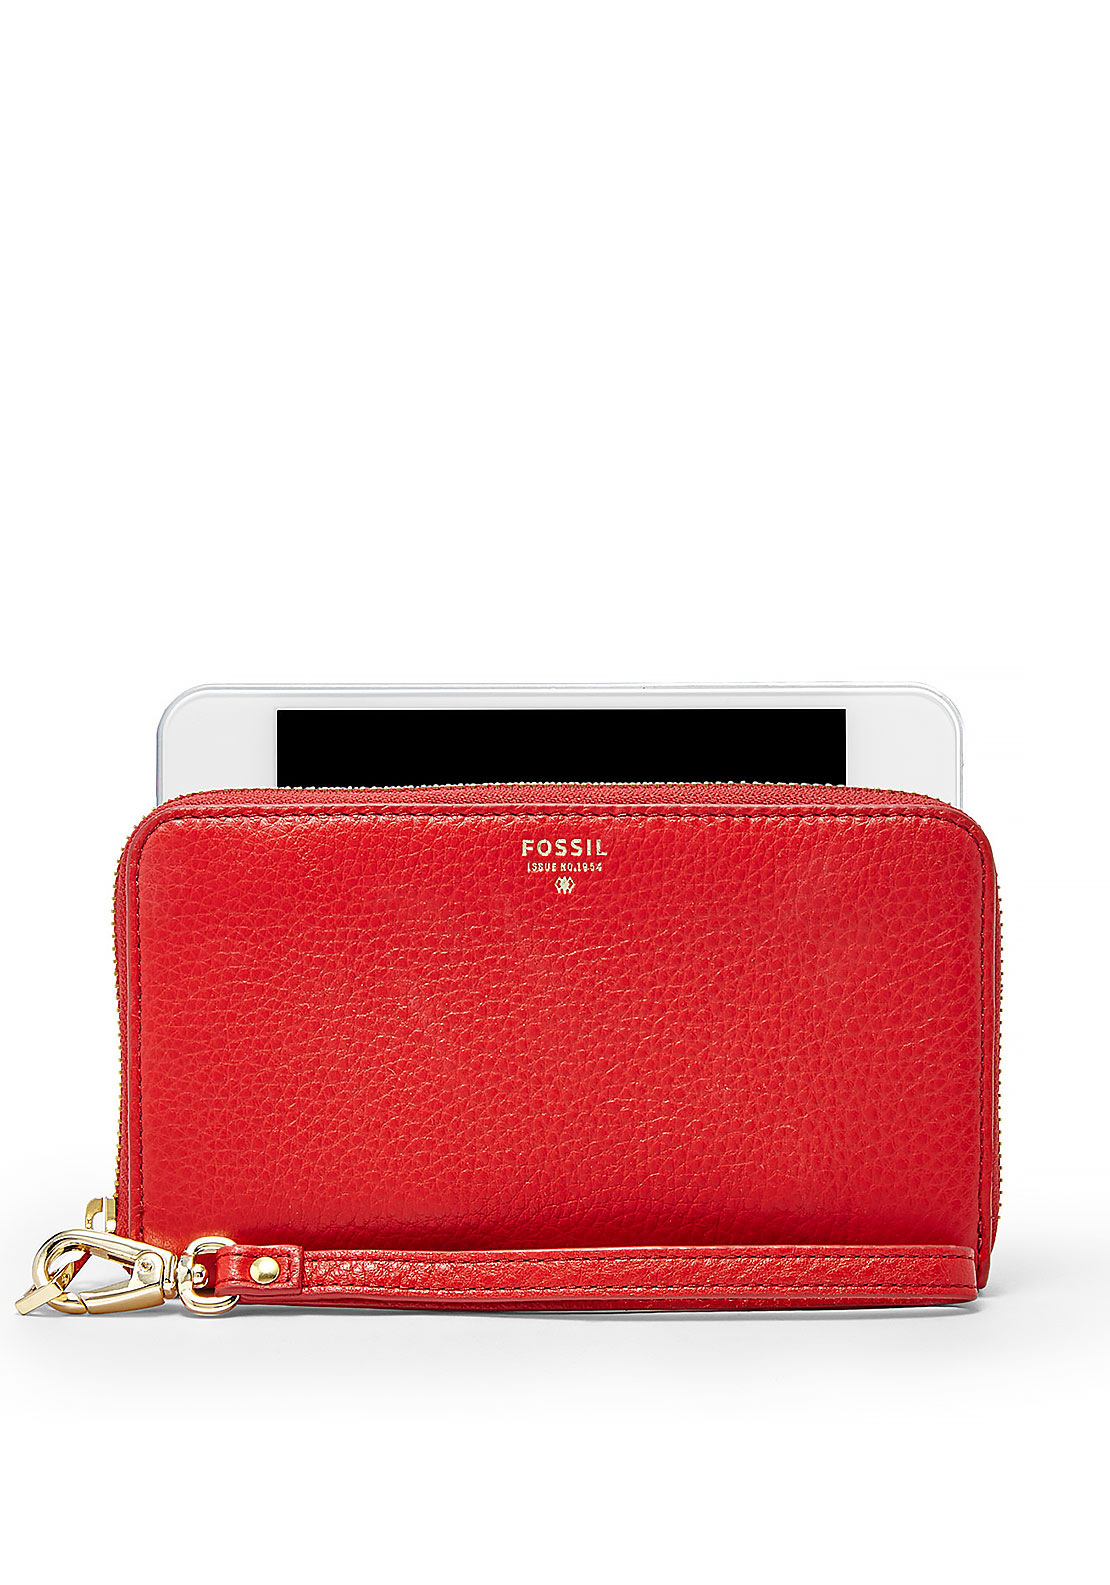 Fossil Sydney Zipped Leather Phone Wallet, Tomato Red